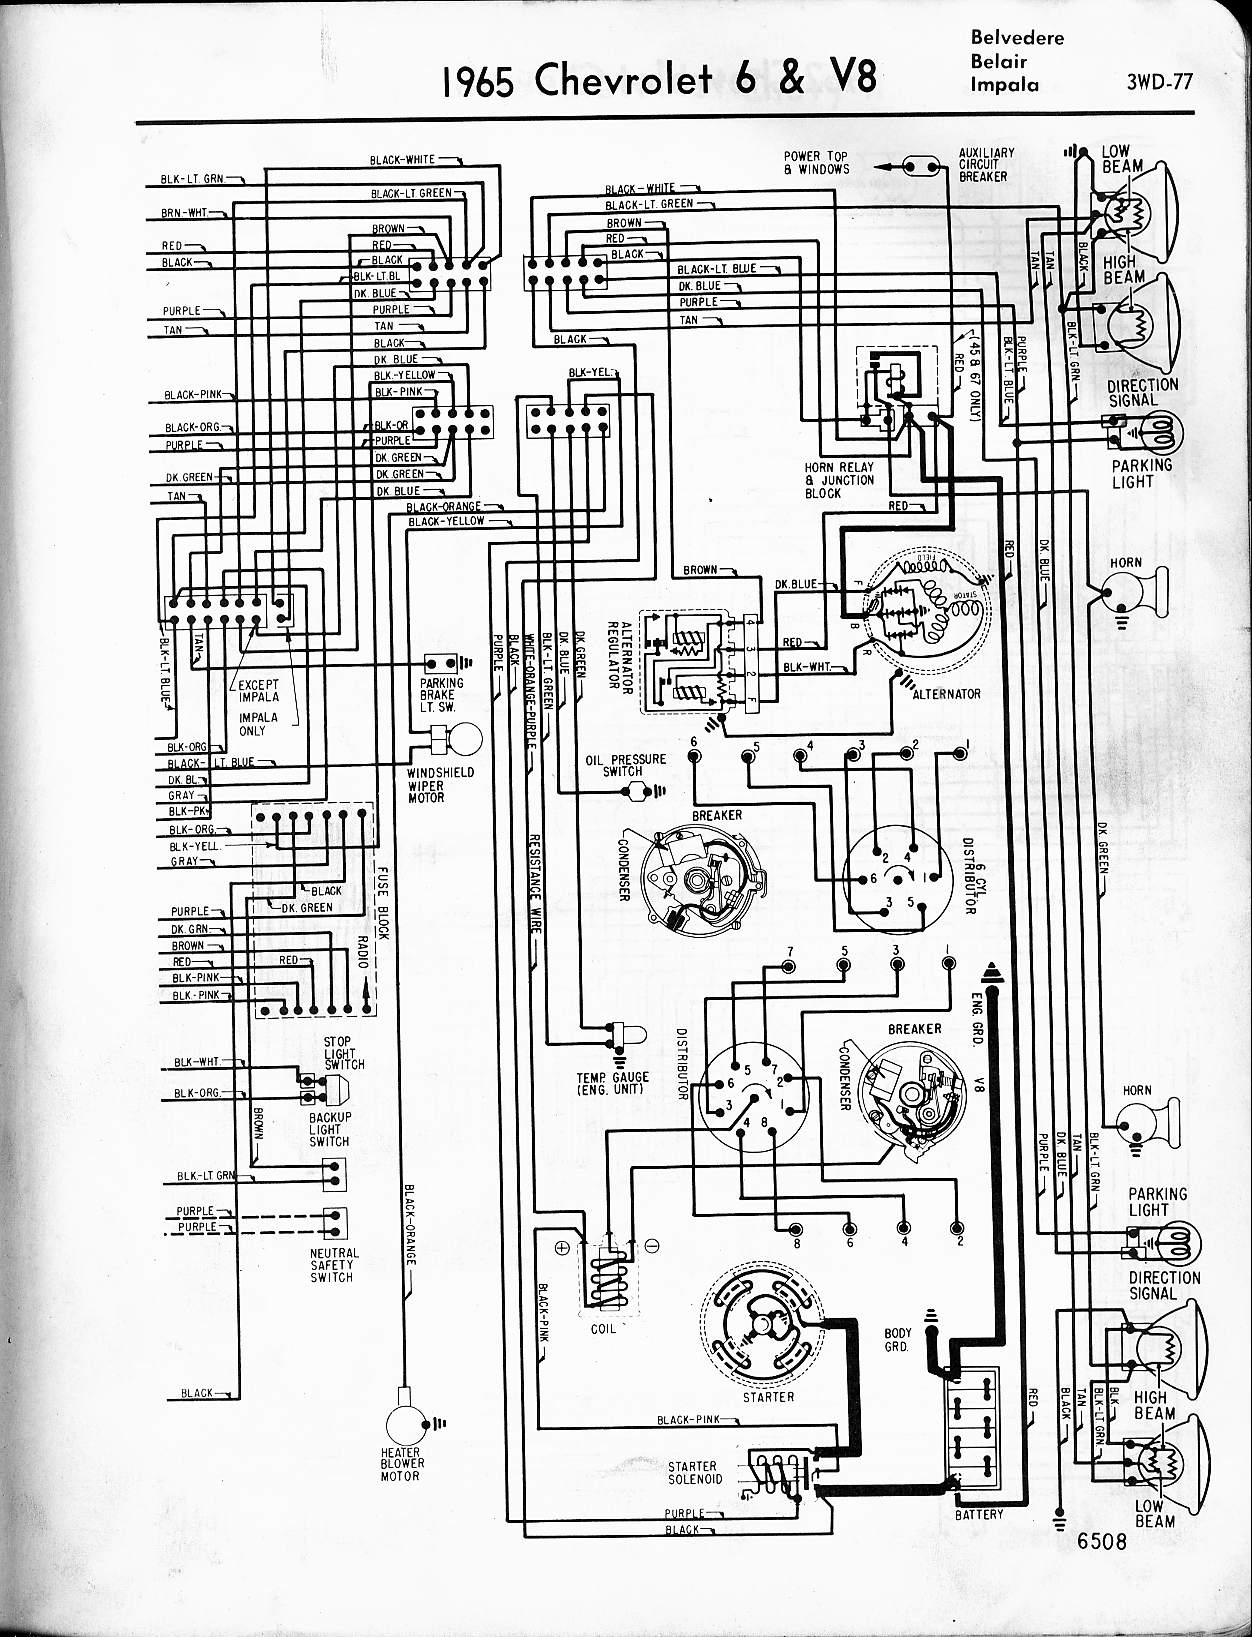 MWireChev65_3WD 077 chevy diagrams 1965 chevy wiring diagram at soozxer.org